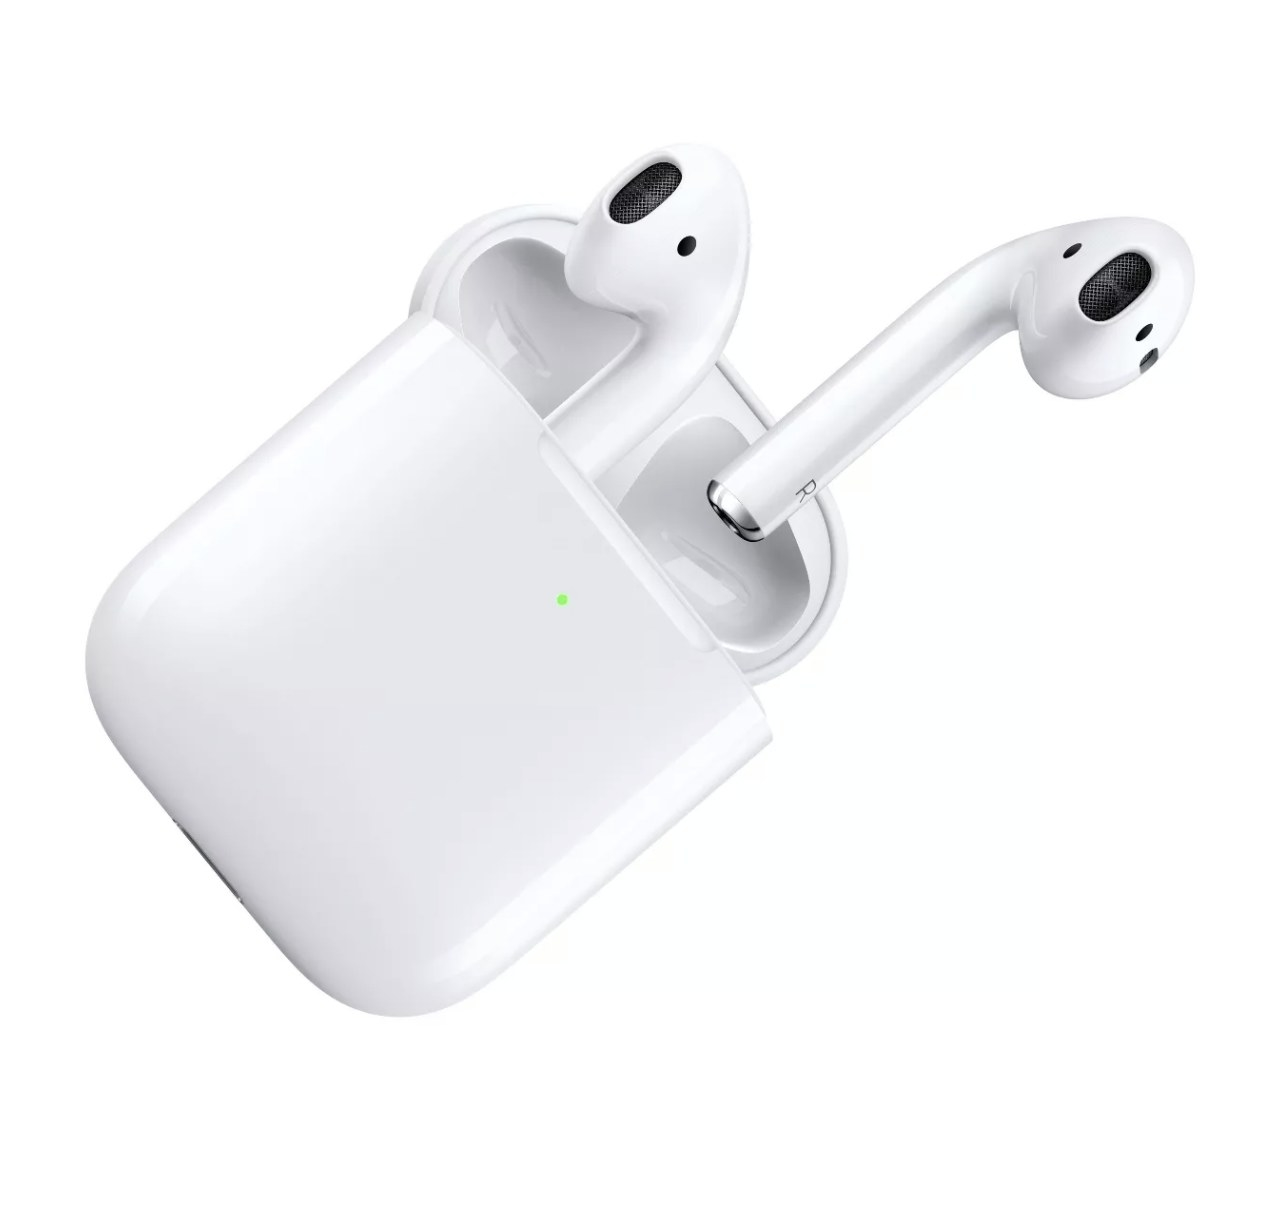 A white Apple AirPod with case